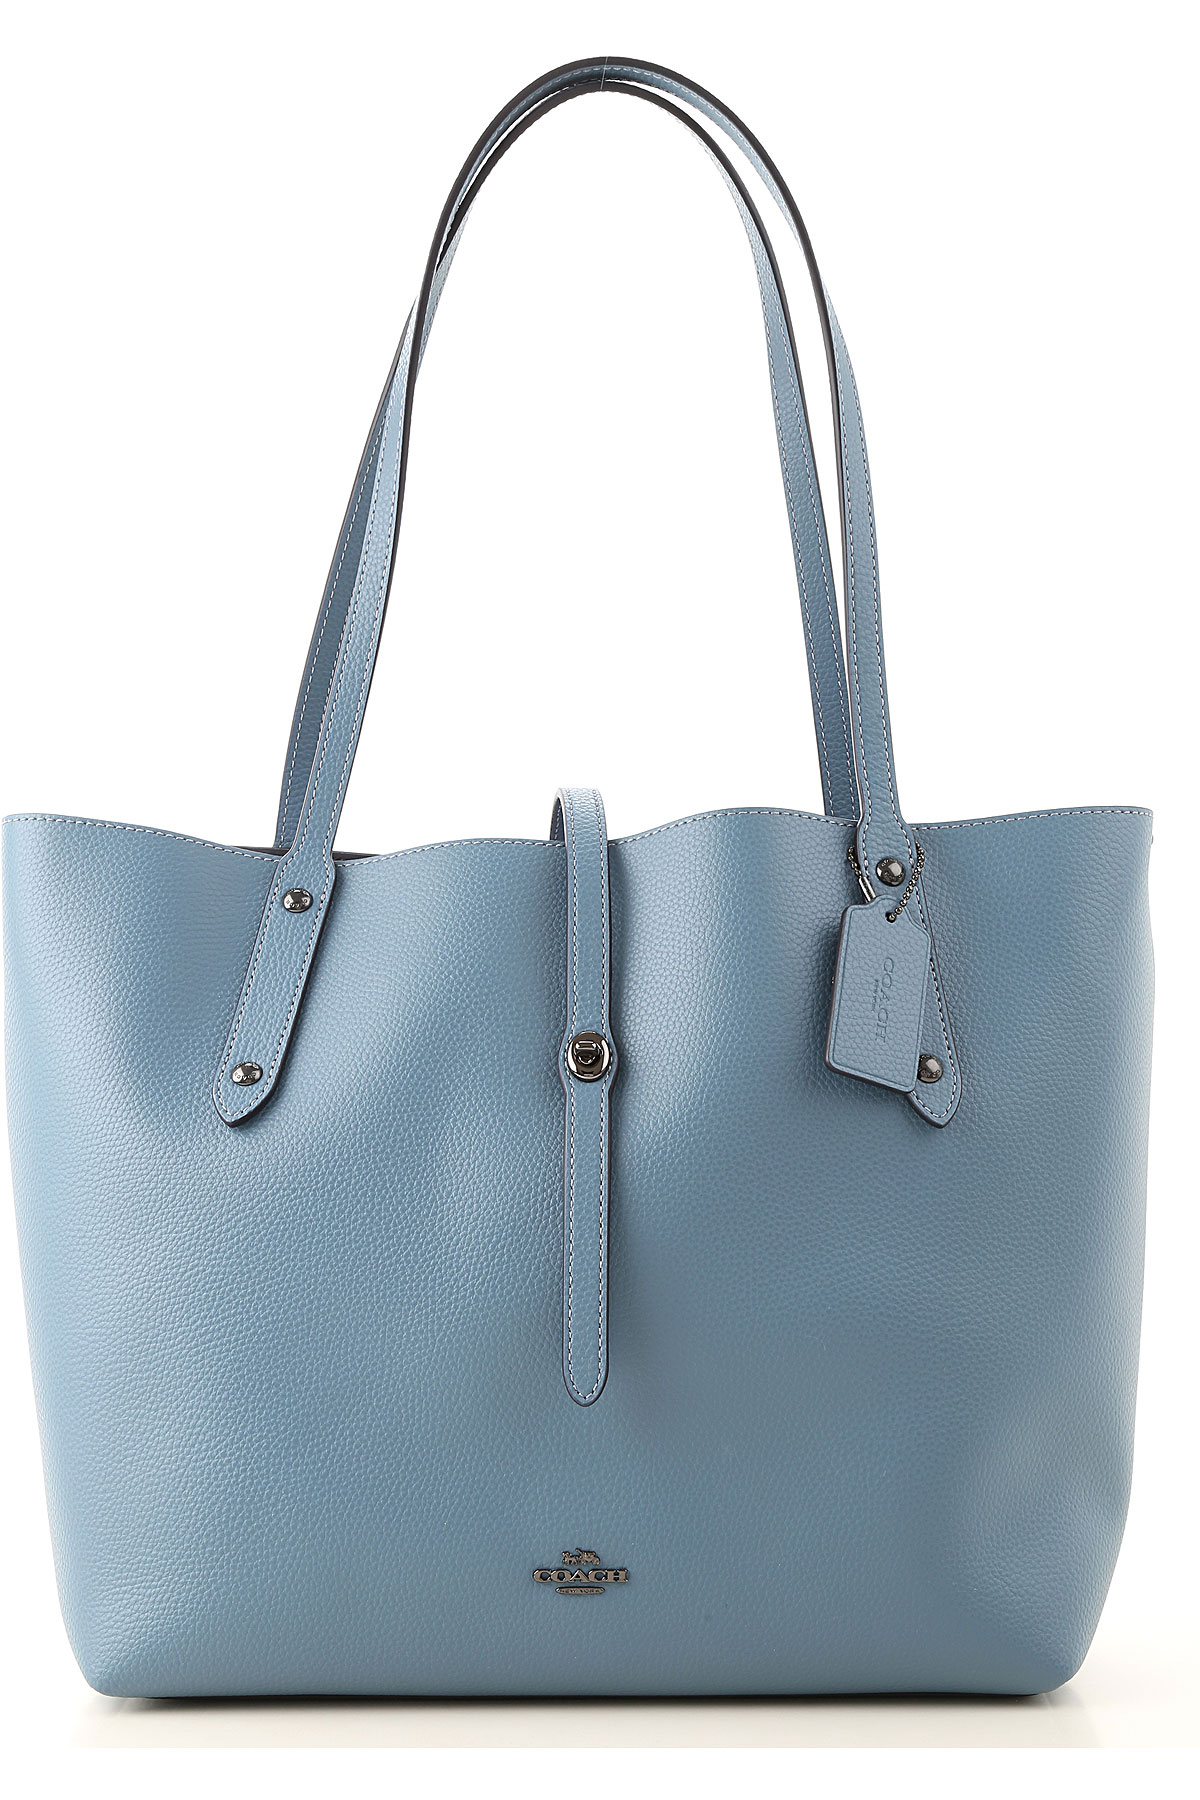 Coach Tote Bag On Sale, Chambray, Leather, 2019